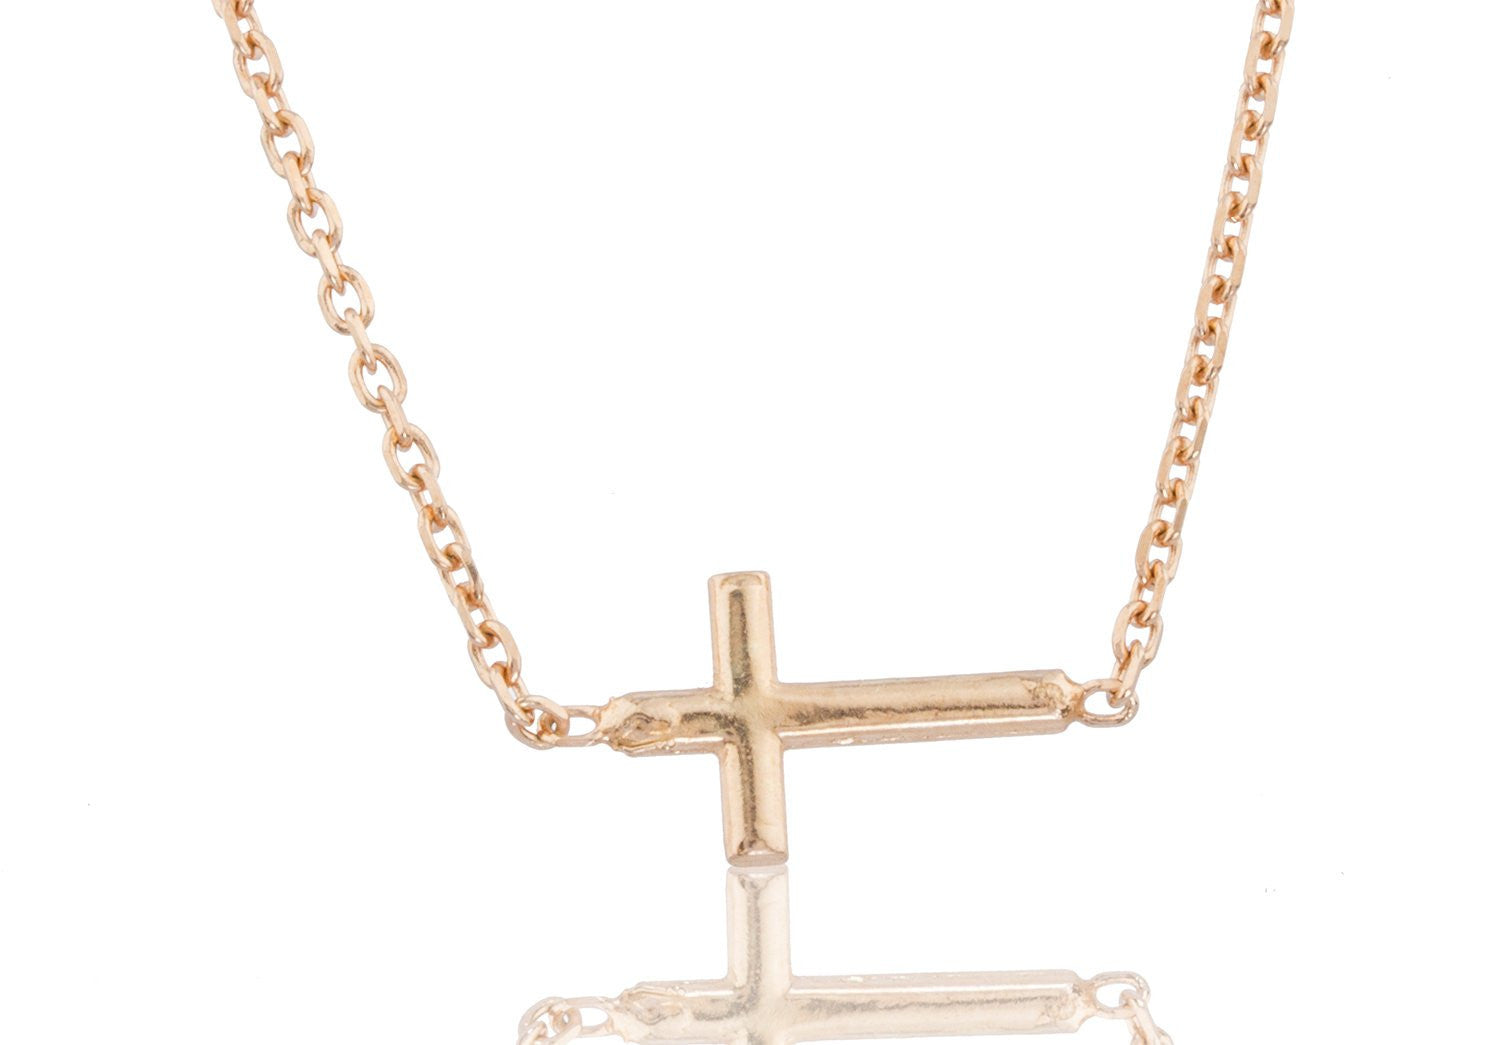 50a7886542 Real 925 Sterling Silver Rose-Goldtone Cross Pendant With A 17 Inch Link  Necklace